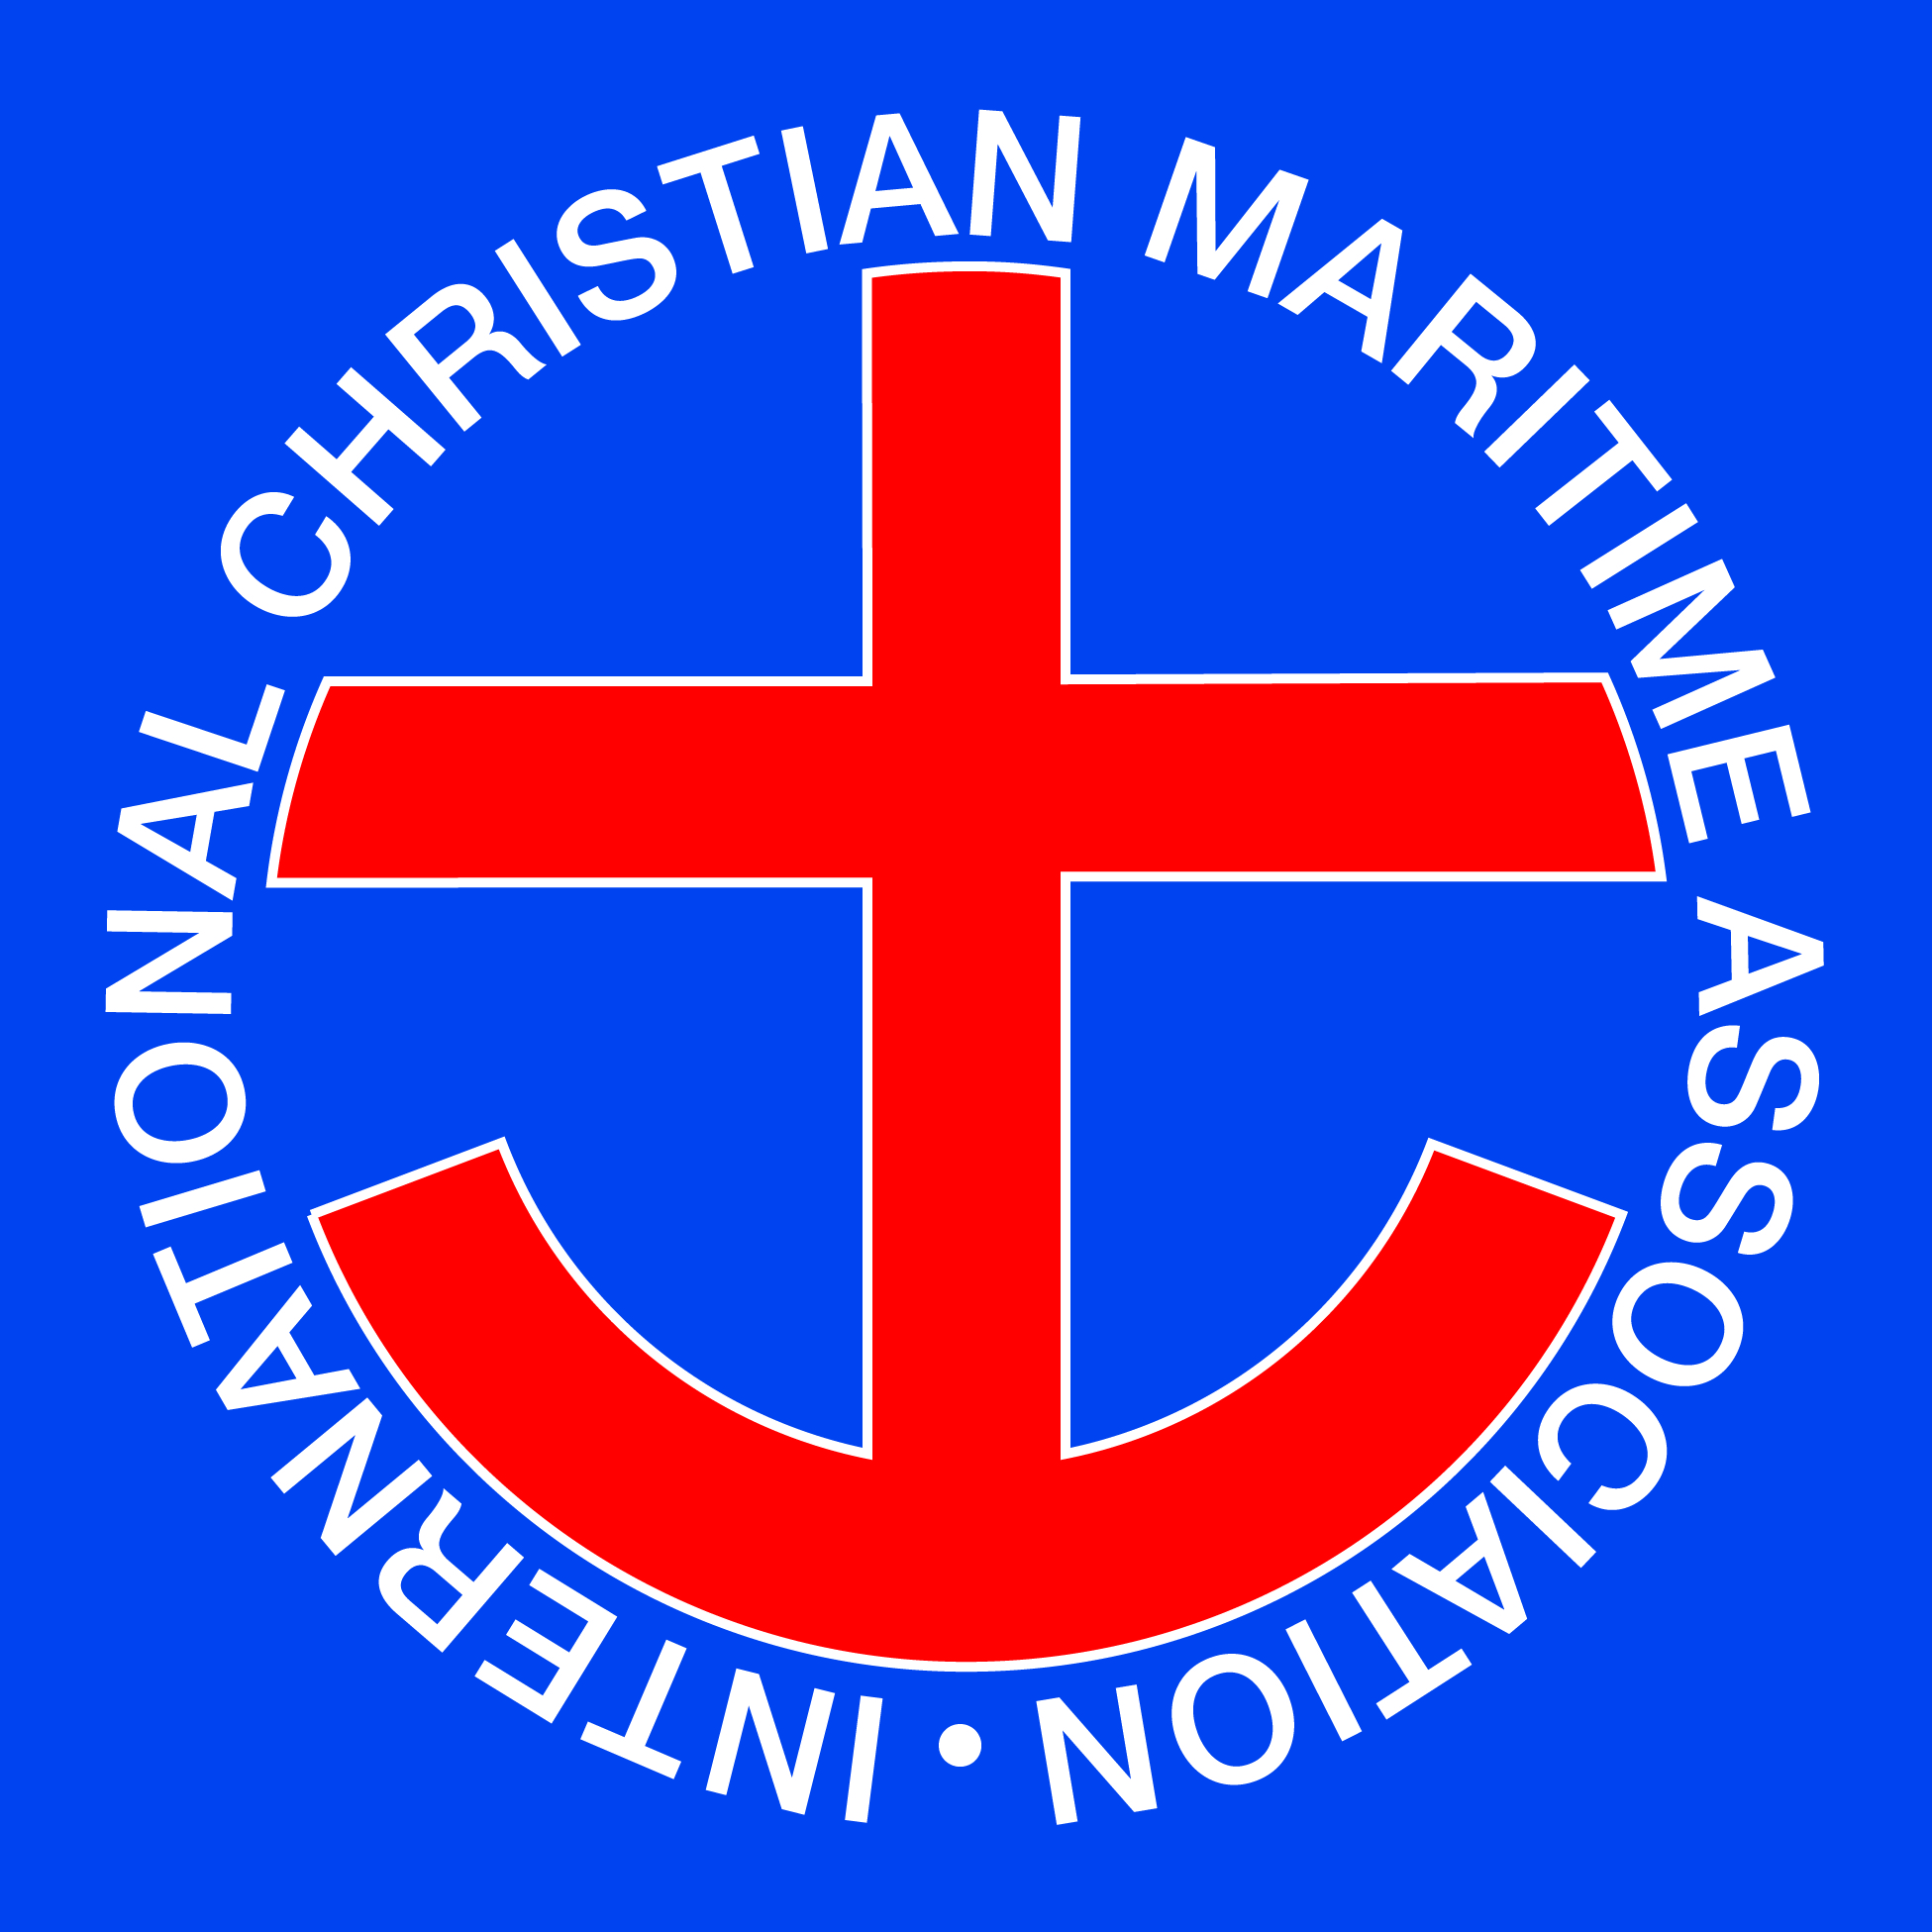 logo for International Christian Maritime Association